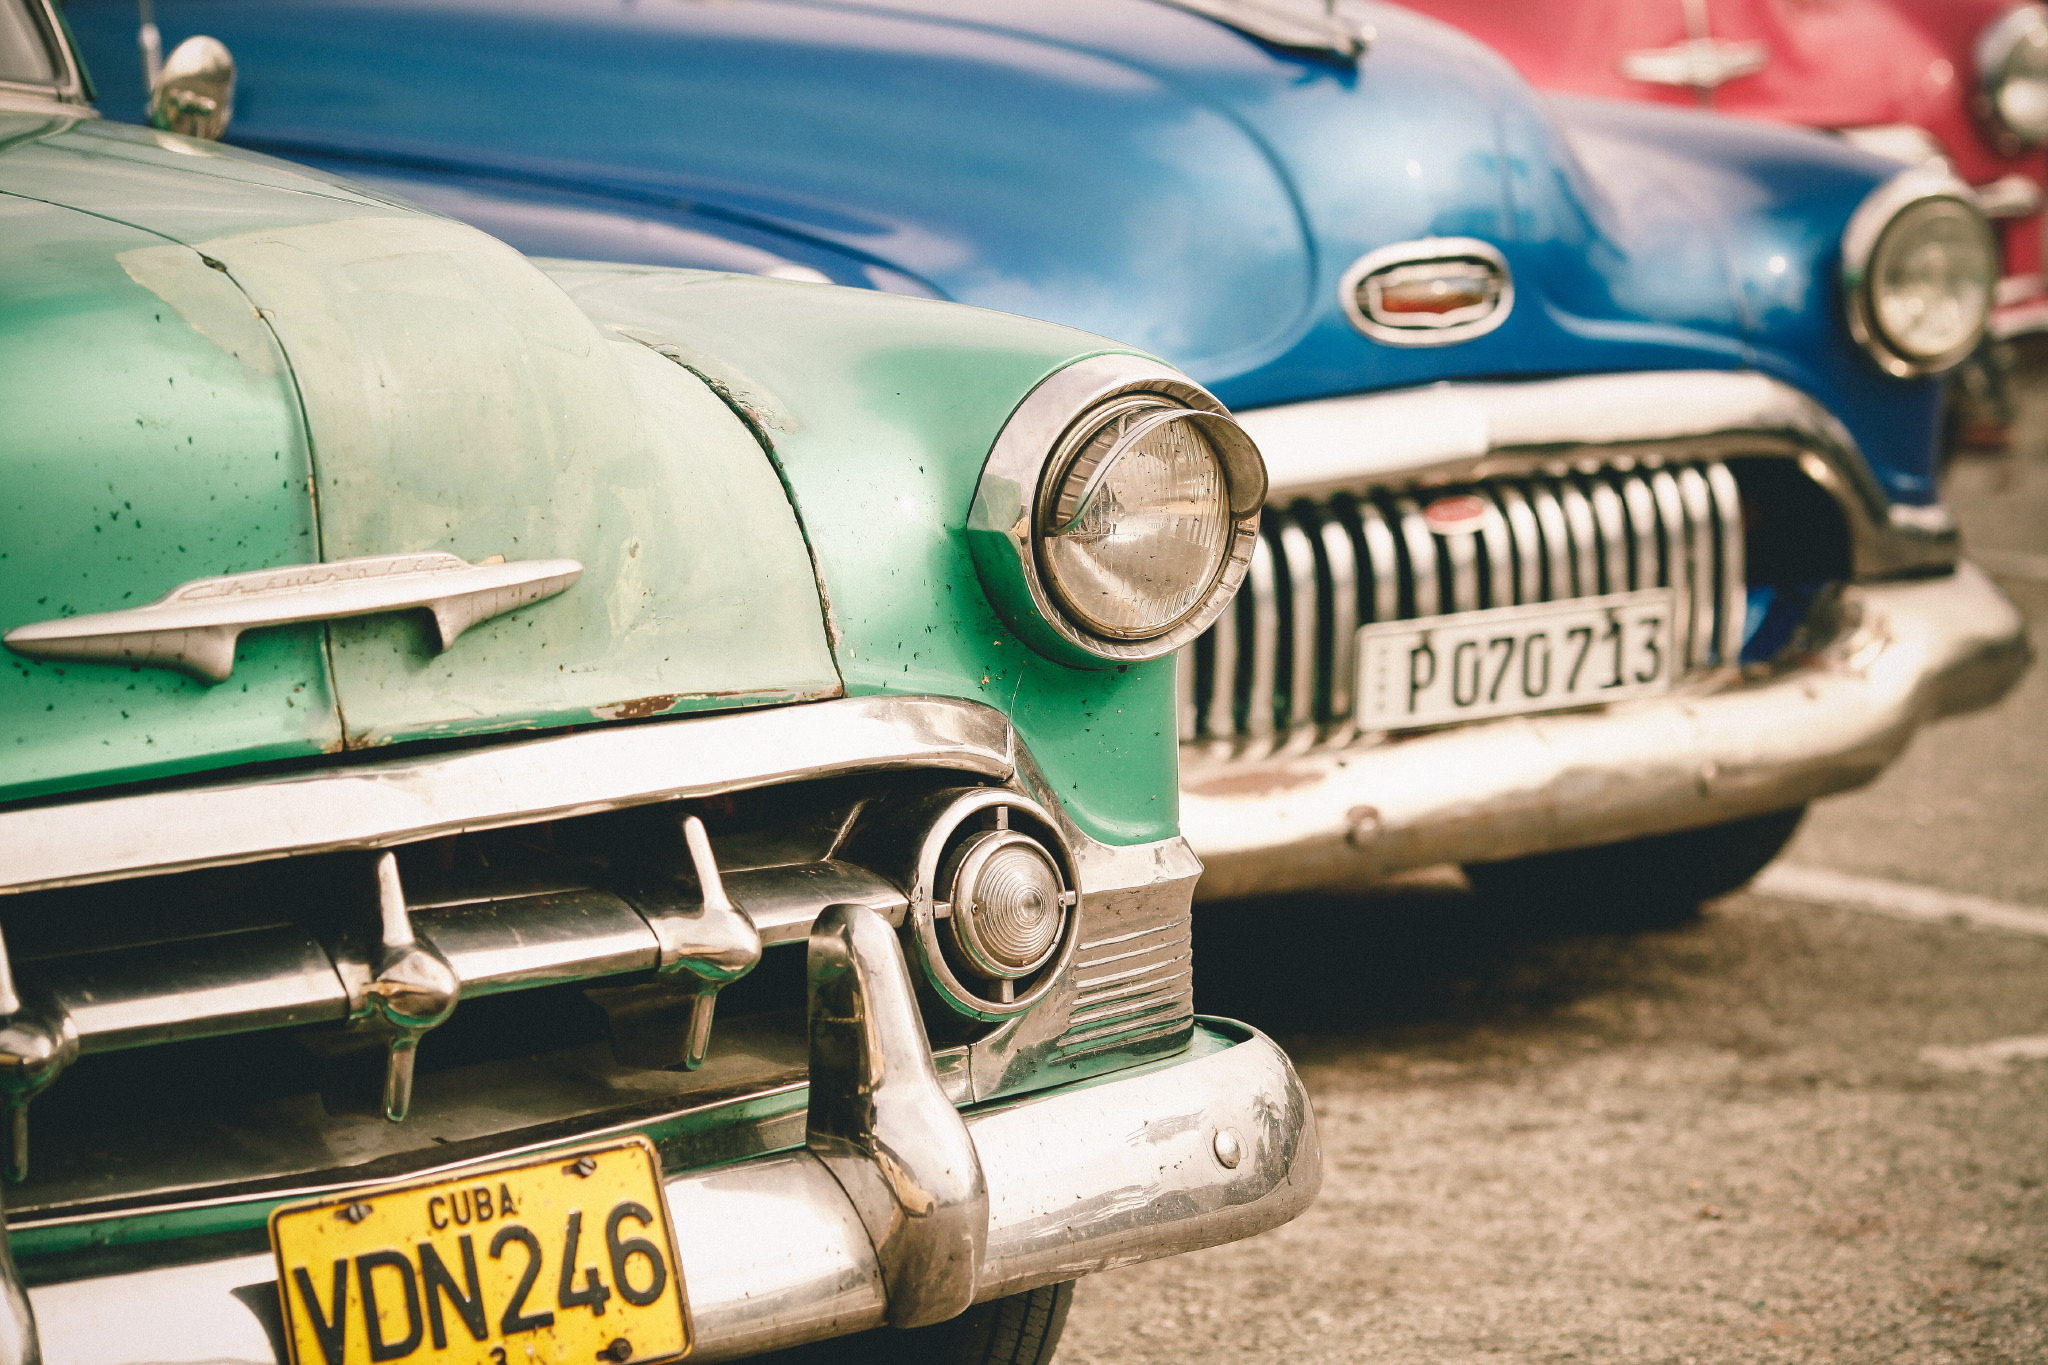 san diego wedding   photographer | view of vibrantly colored cars and their plate numbers